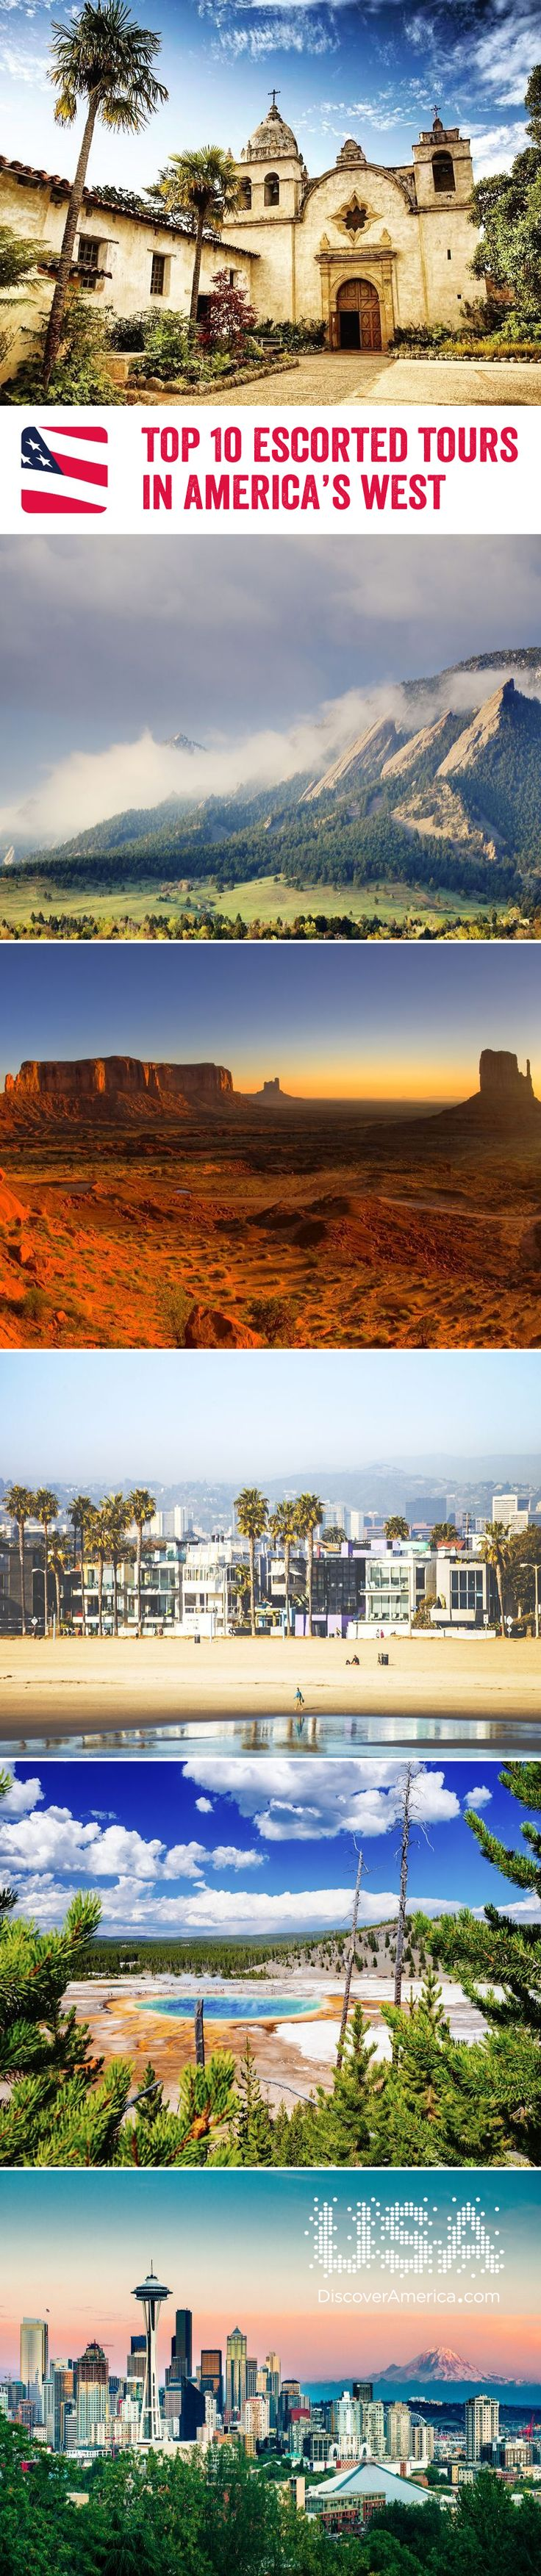 For fast-paced, glamourous cities and incredible National Parks, head on an escorted tour to America's West. We've even given you our top 10 favourites to choose from!